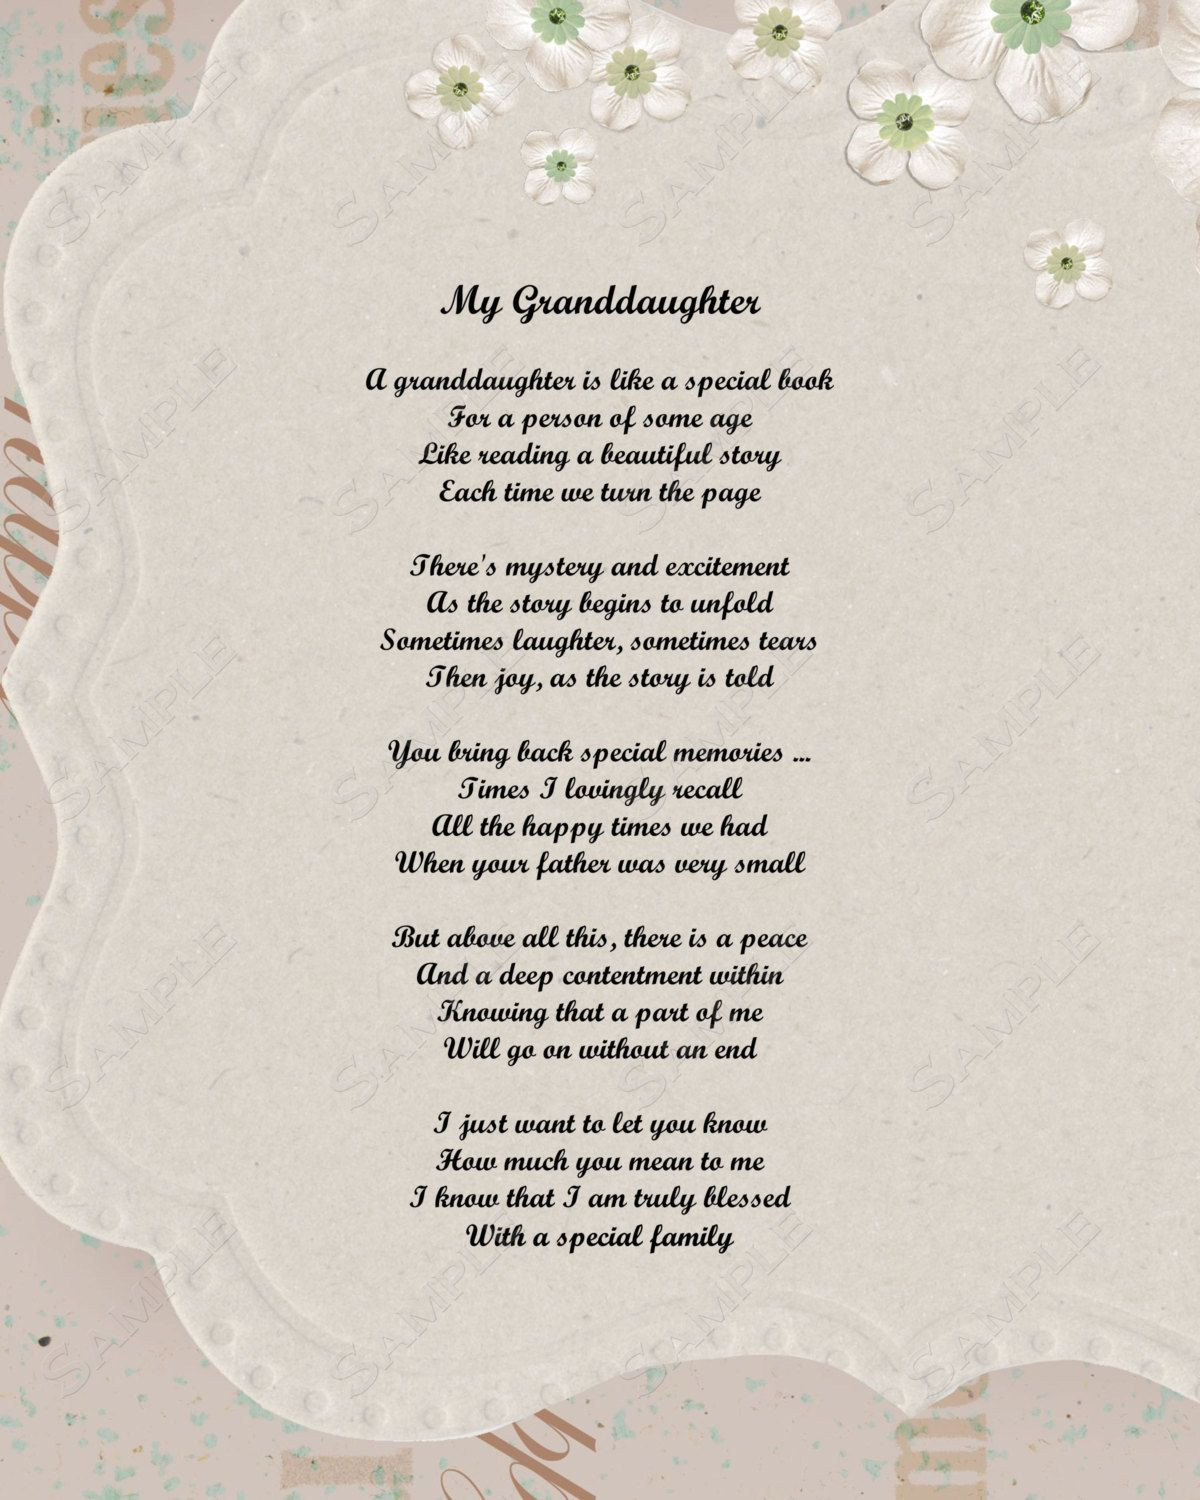 Inspirational Quotes From Grandmother To Granddaughter  Granddaughter Poem Love Poem 8 X 10 Print by